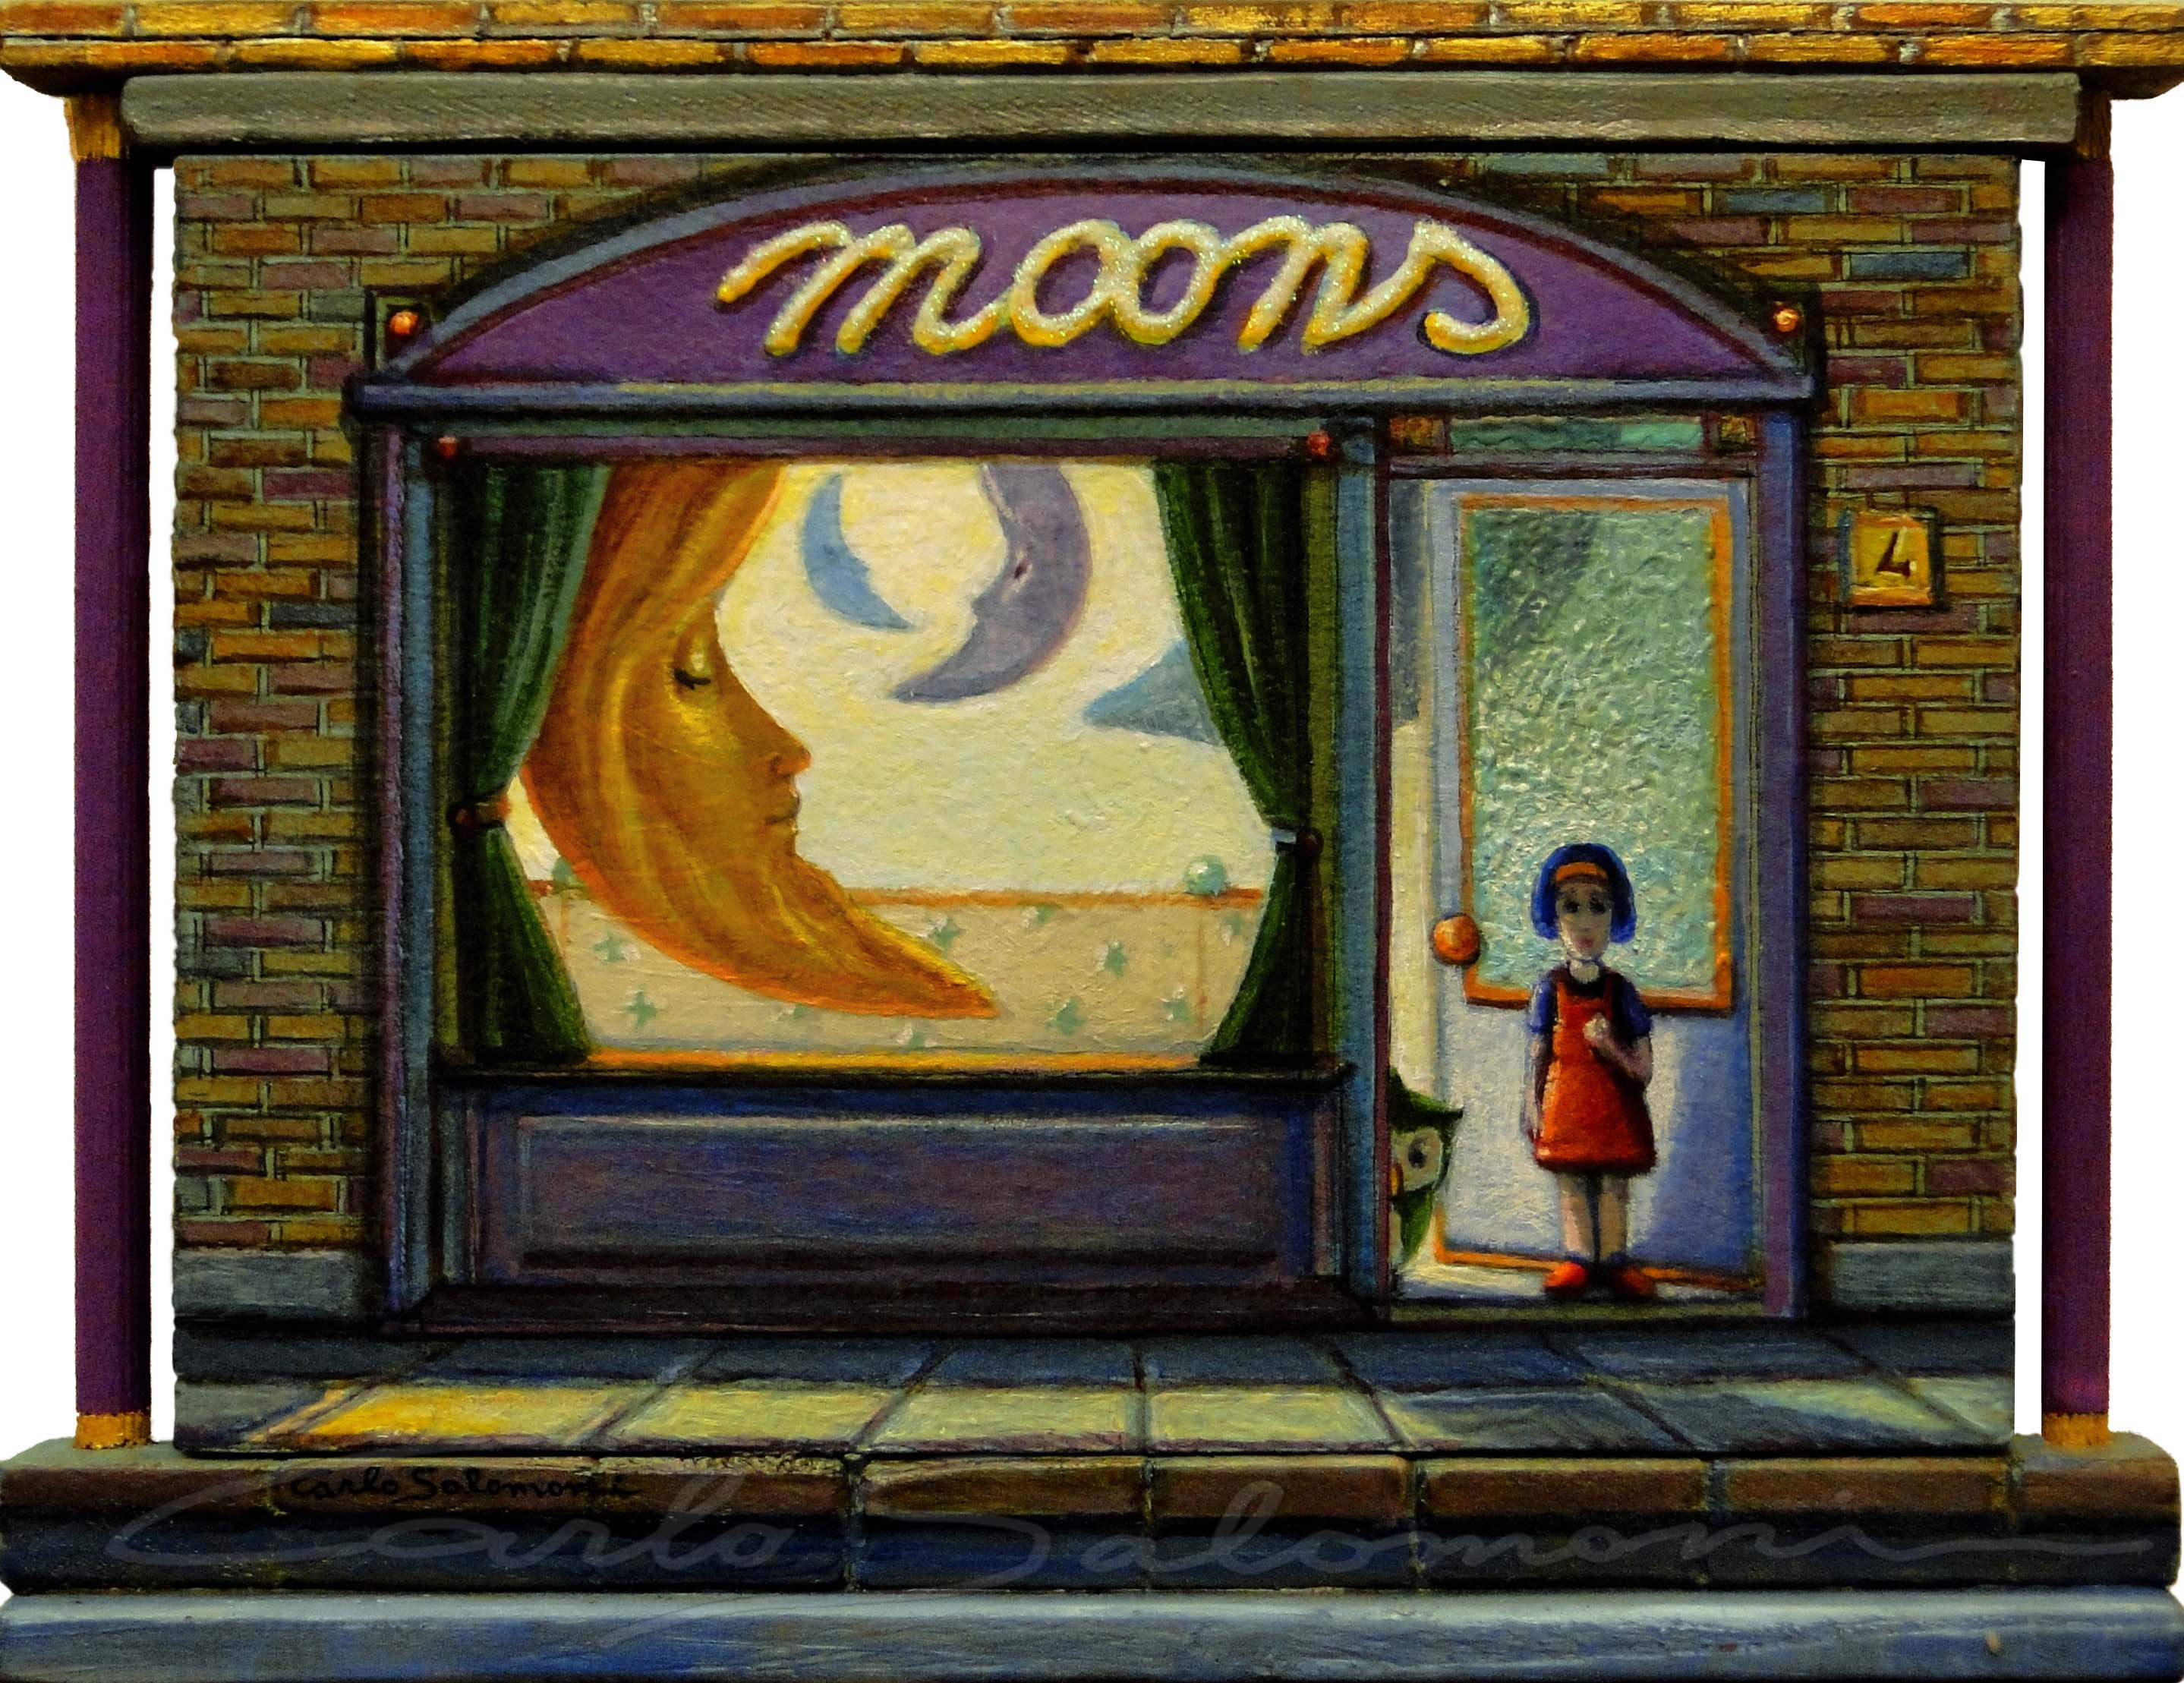 The shop of the Moons